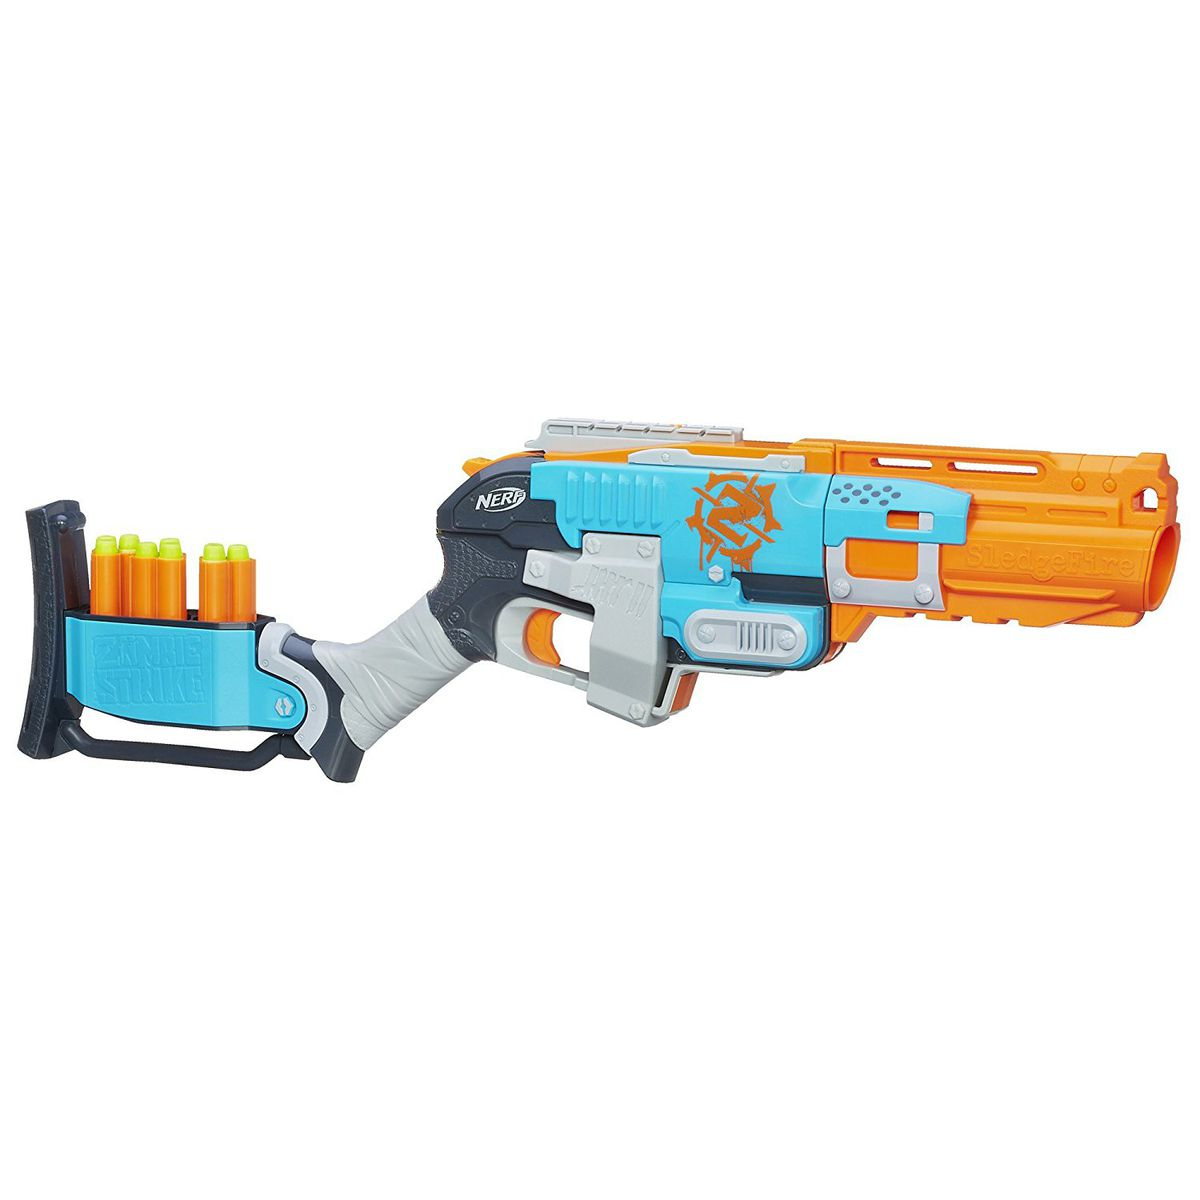 Best nerf guns to buy in 2018